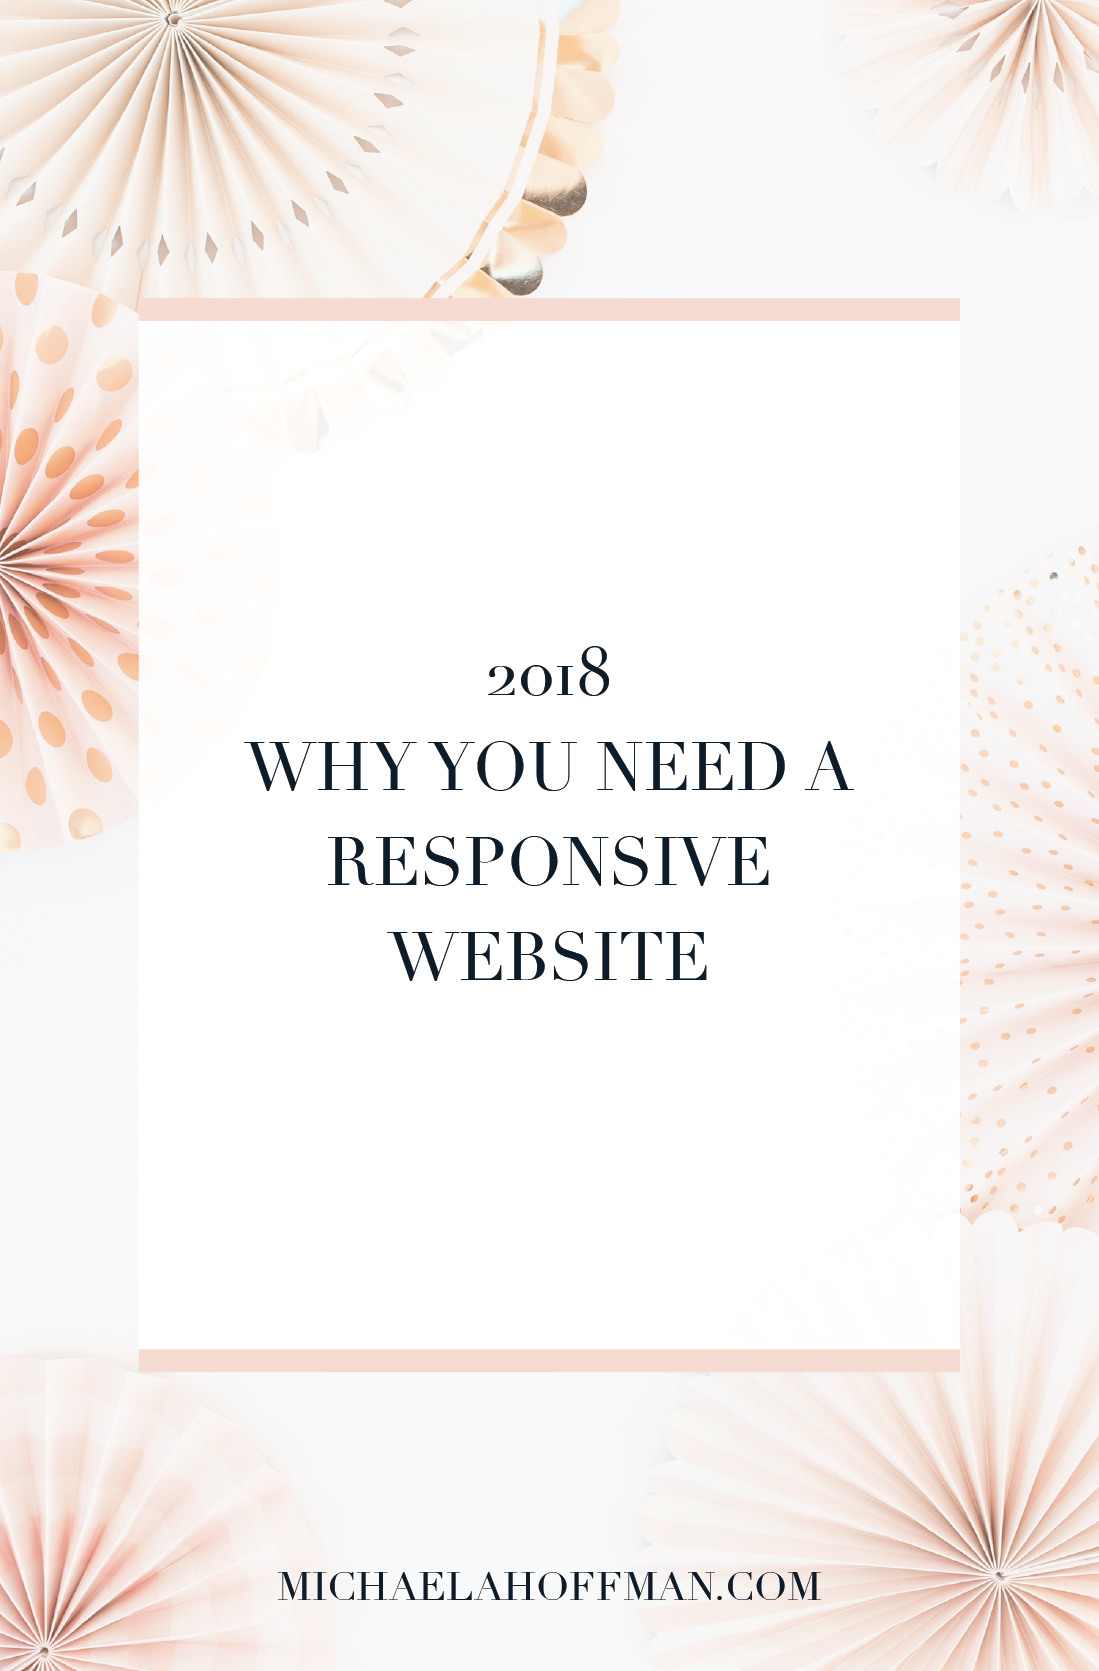 One website trend your business needs to jump on in 2018 to grow and generate more leads